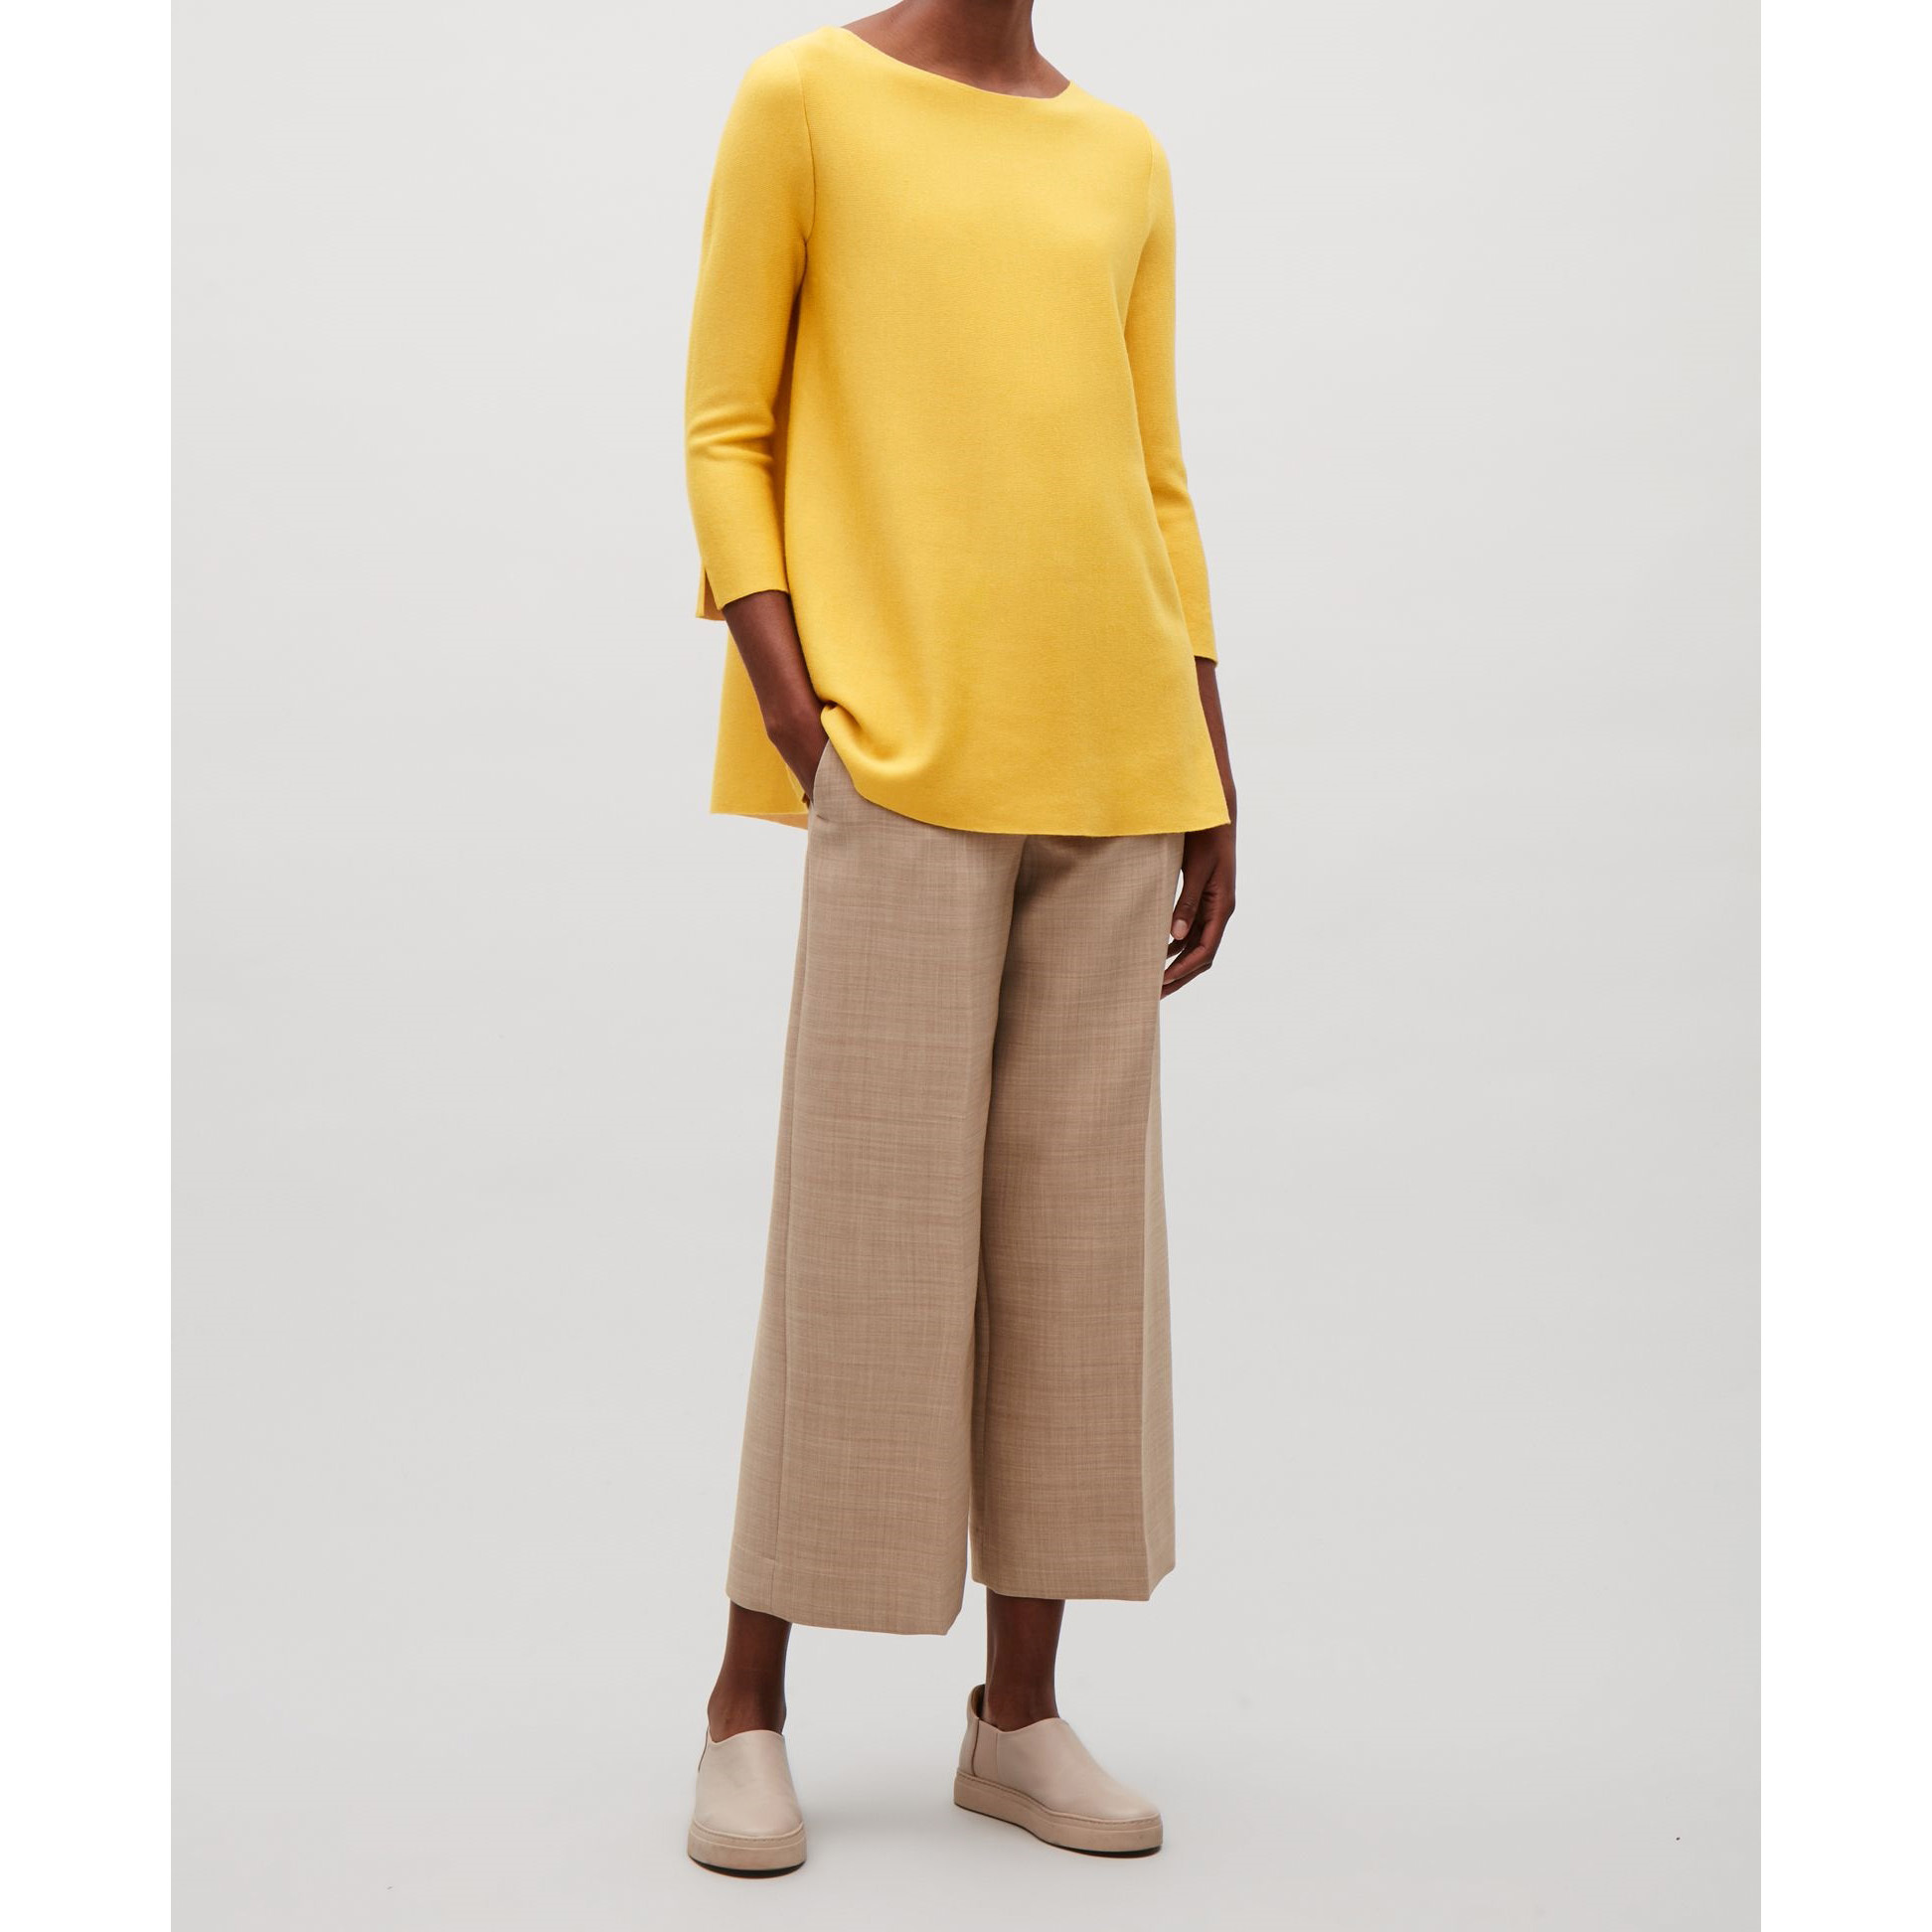 COS☆CONTRAST LINED A-LINE JUMPER / yellow